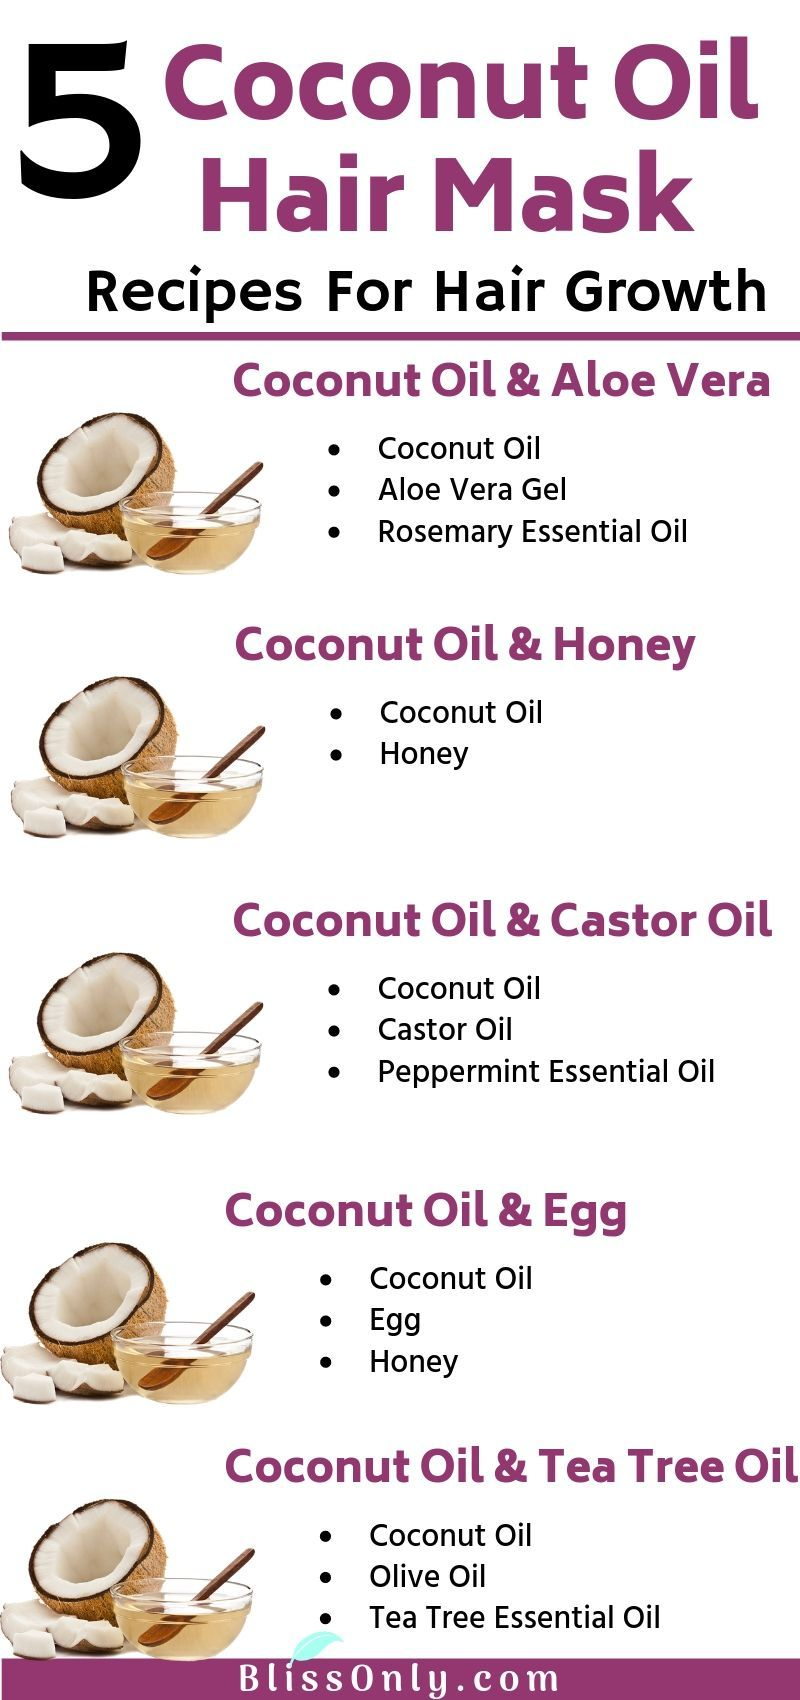 5 Best Coconut Oil Hair Mask For Hair Growth Coconut Oil Hair